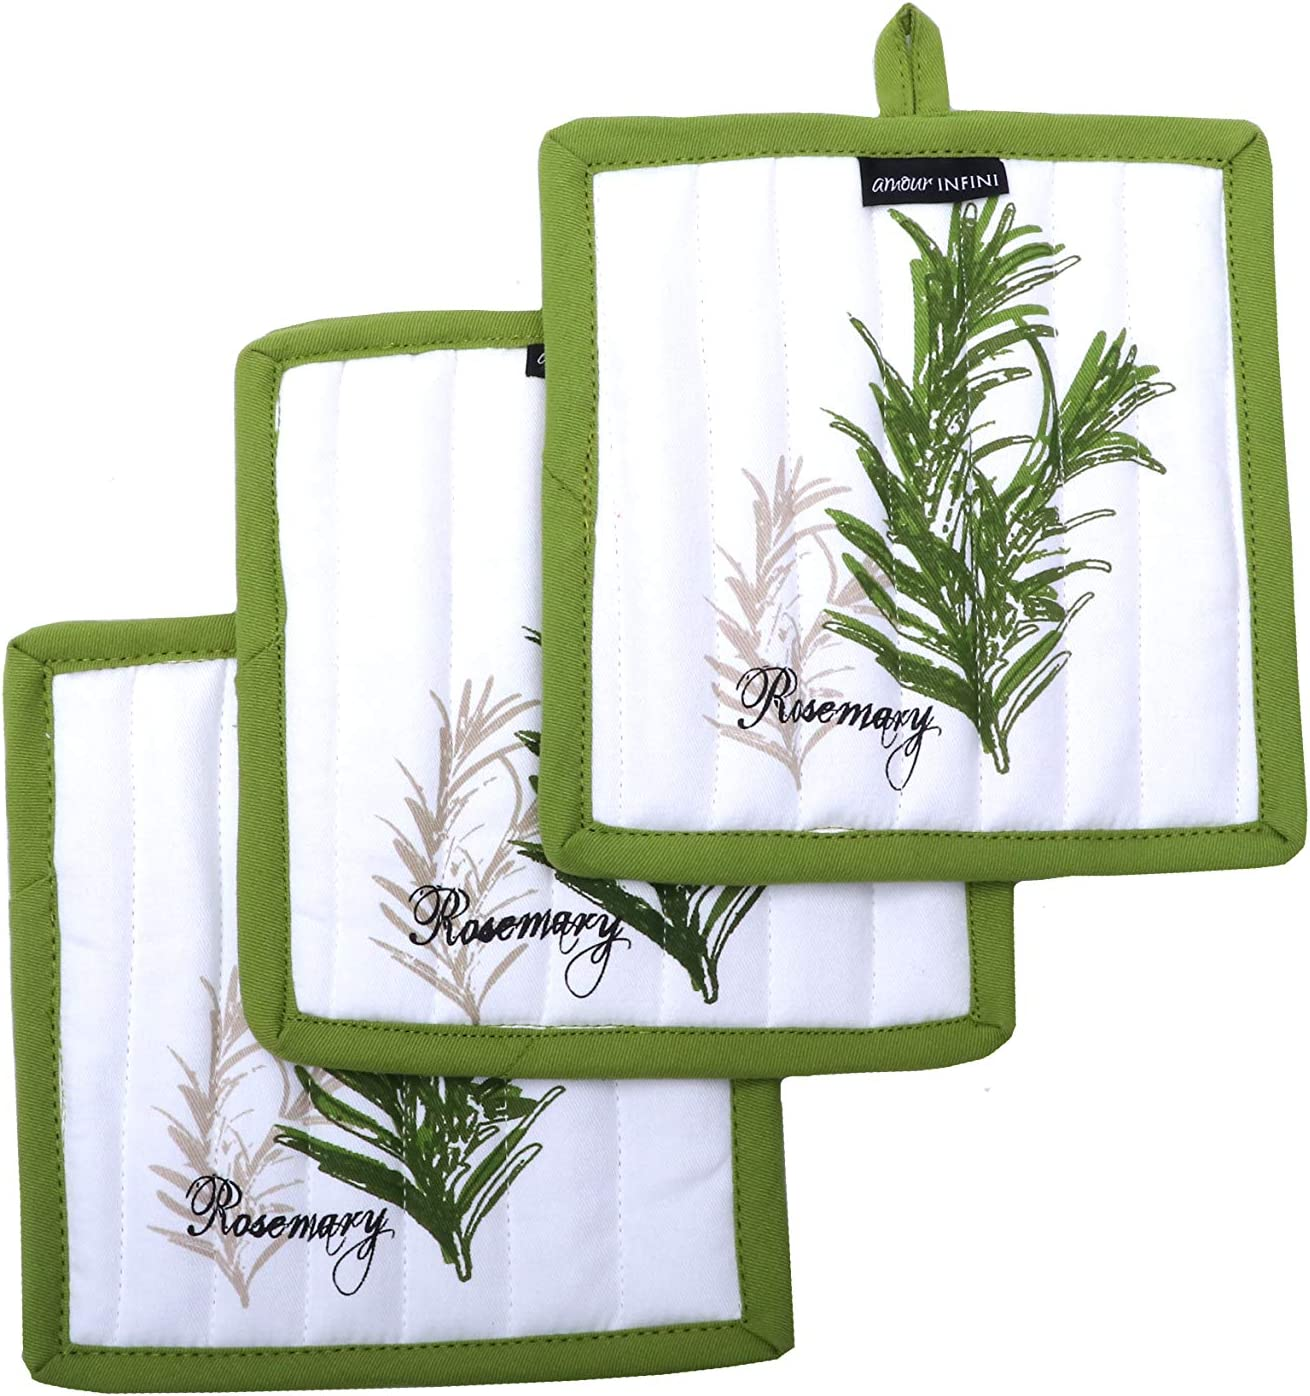 AMOUR INFINI Pot Holders, Unique Herb Garden Design, Pot Holders Heat Resistant, Made of 100% Cotton, Eco-Friendly & Safe, Set of 3, Pot Holder Size 8 x 8 inches, Pot Holders for Kitchen